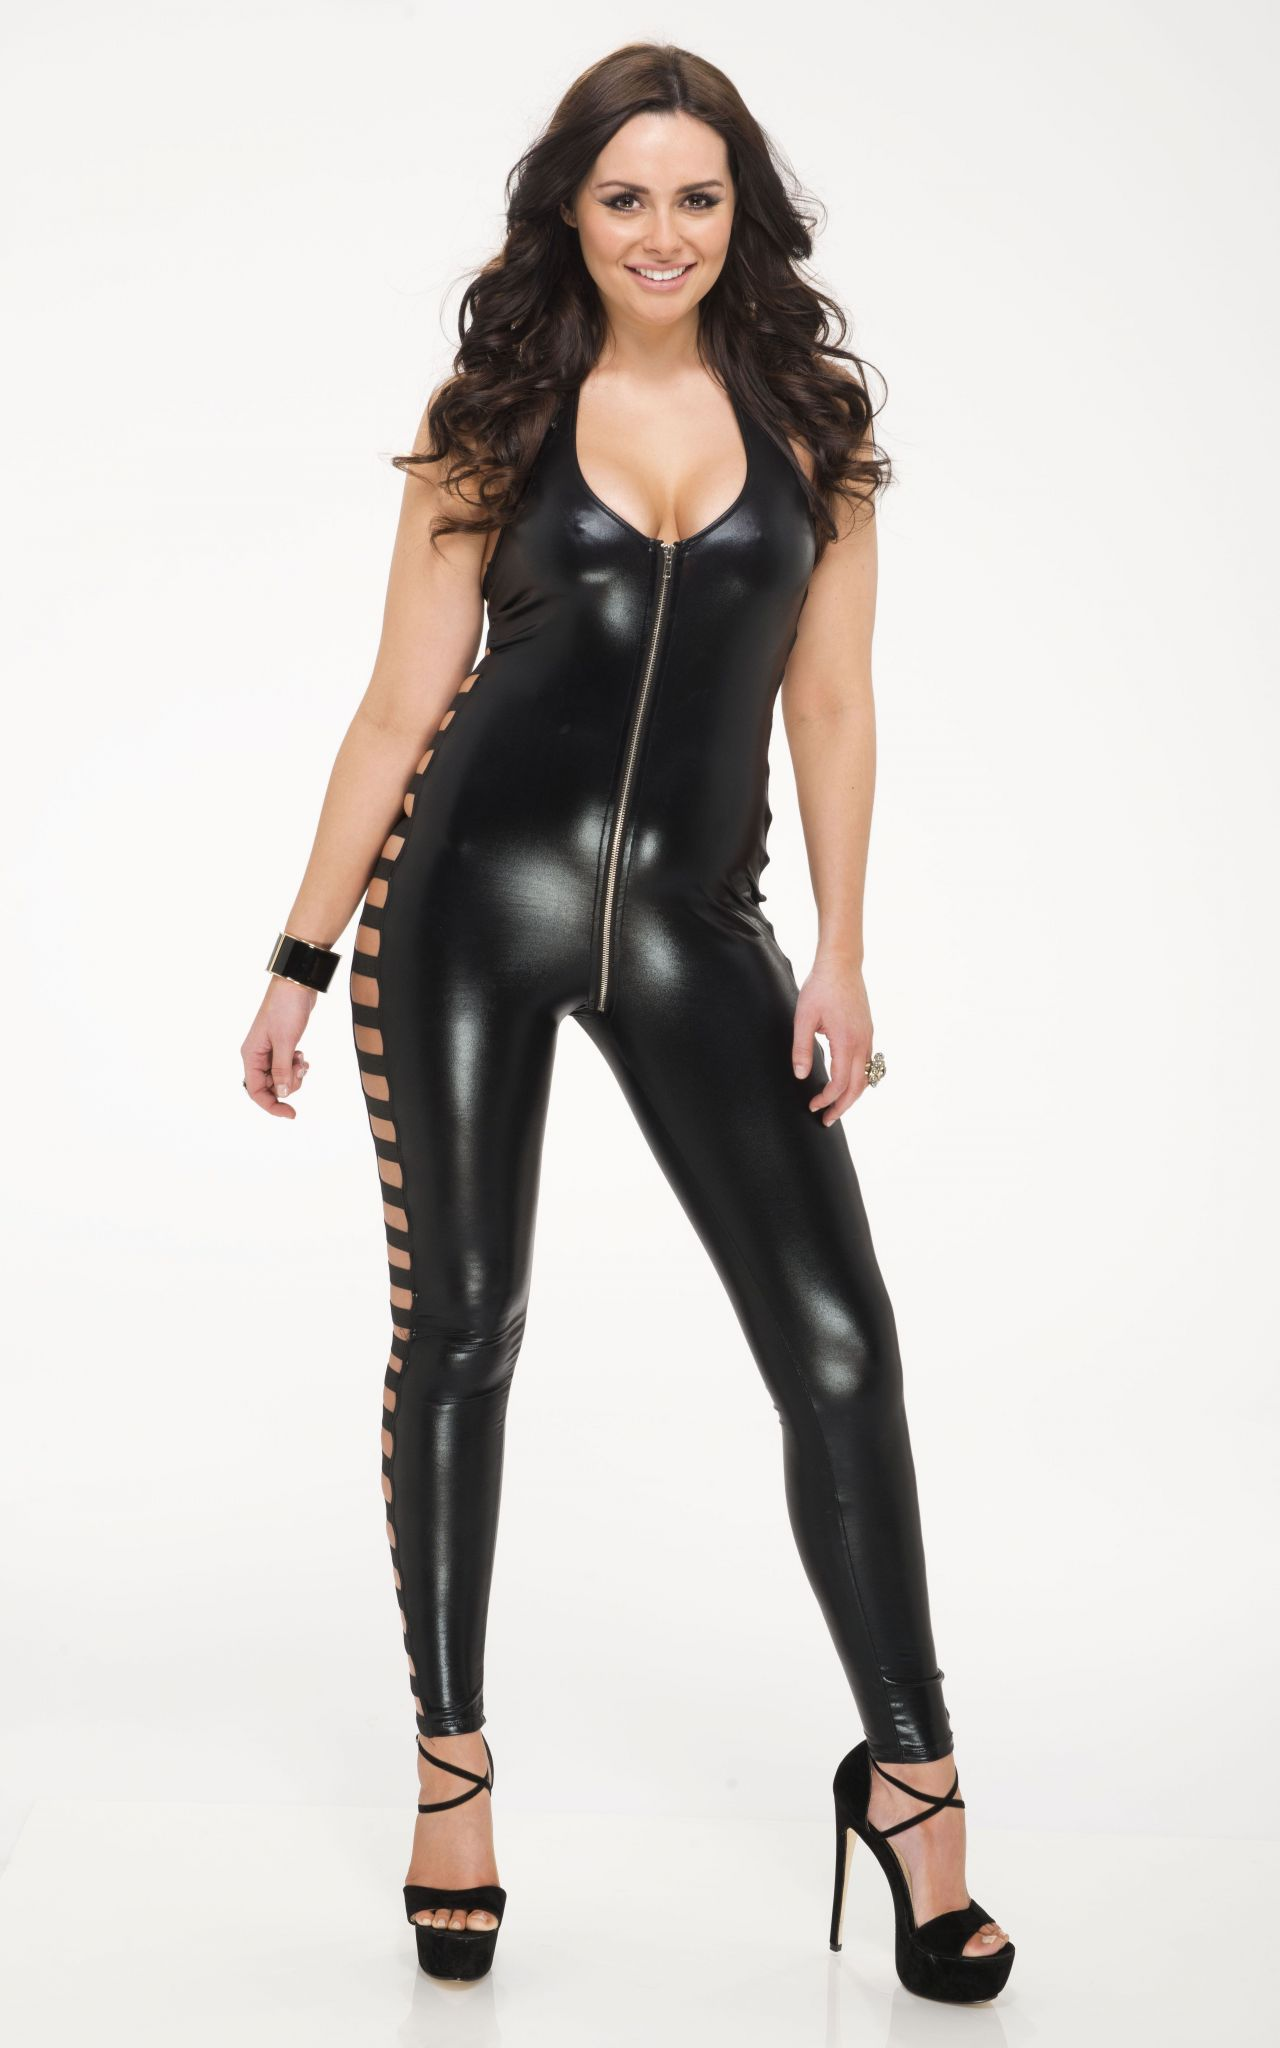 Kelsey-Beth Crossley in Latex – Dan Charity Photoshoot (2014)